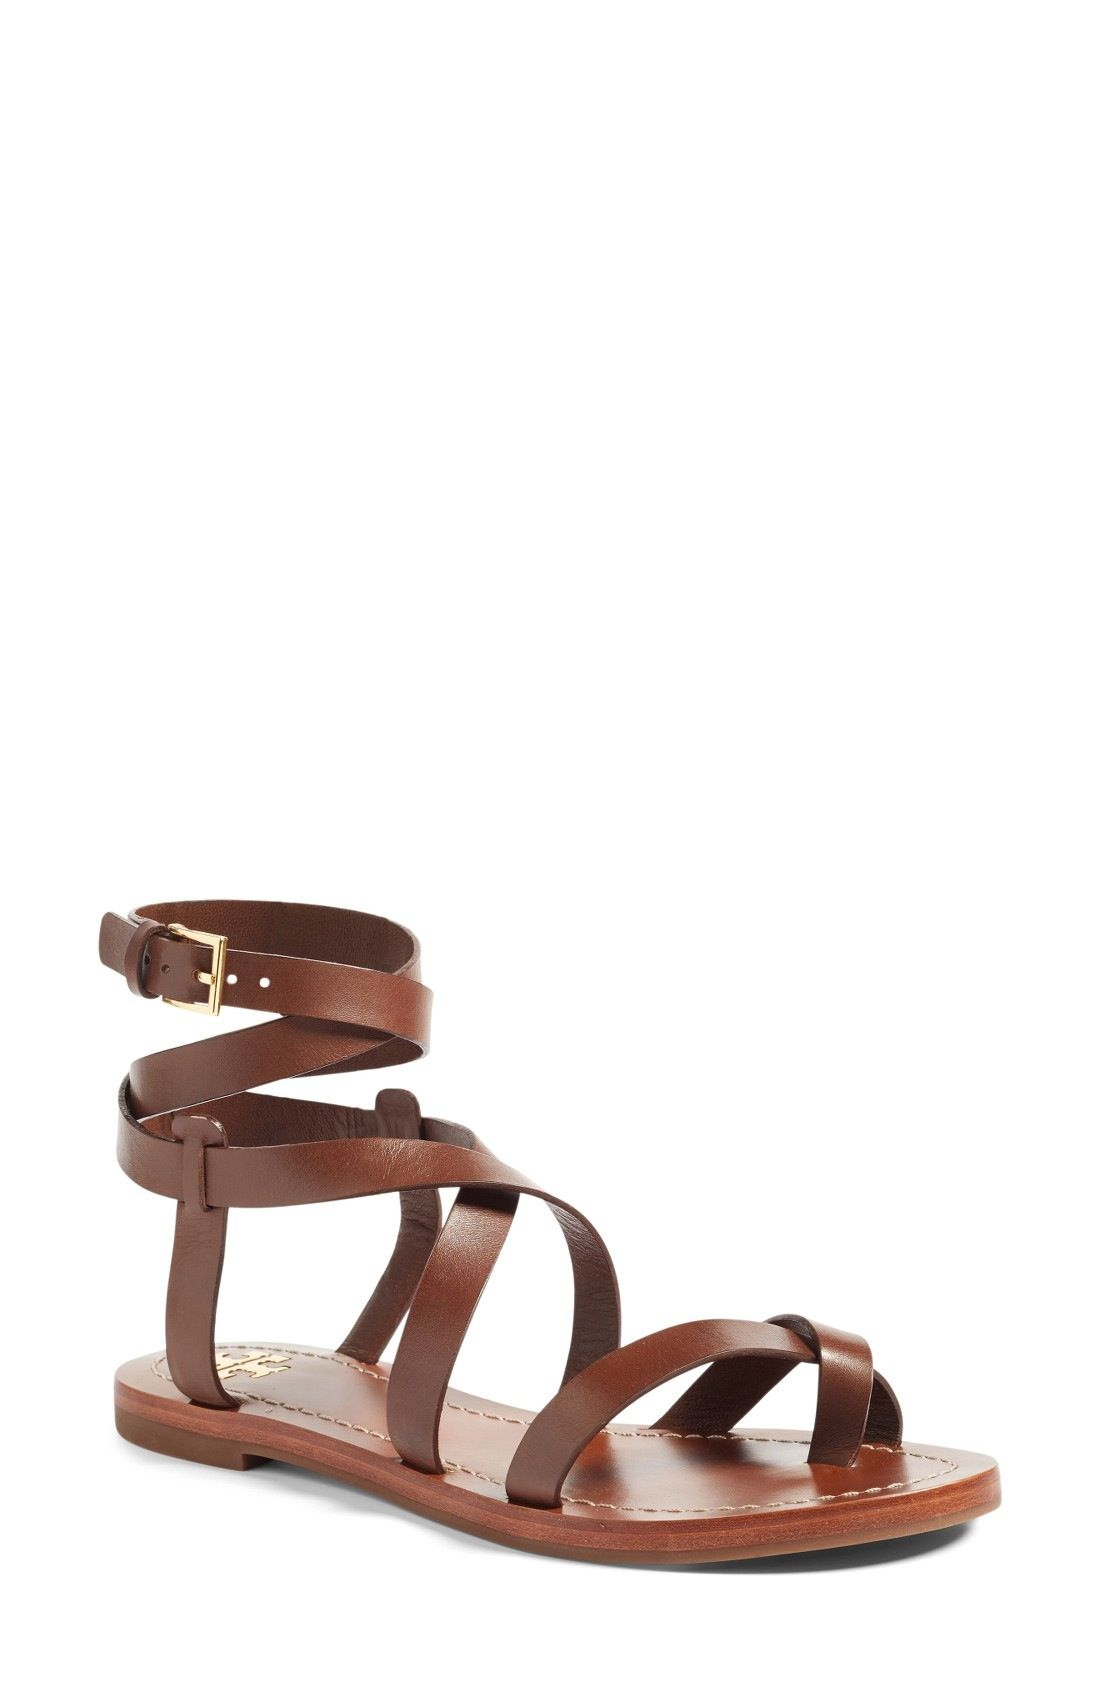 e913f27d128d Tory Burch  Patos  Gladiator Sandal (Women) available at  Nordstrom ...